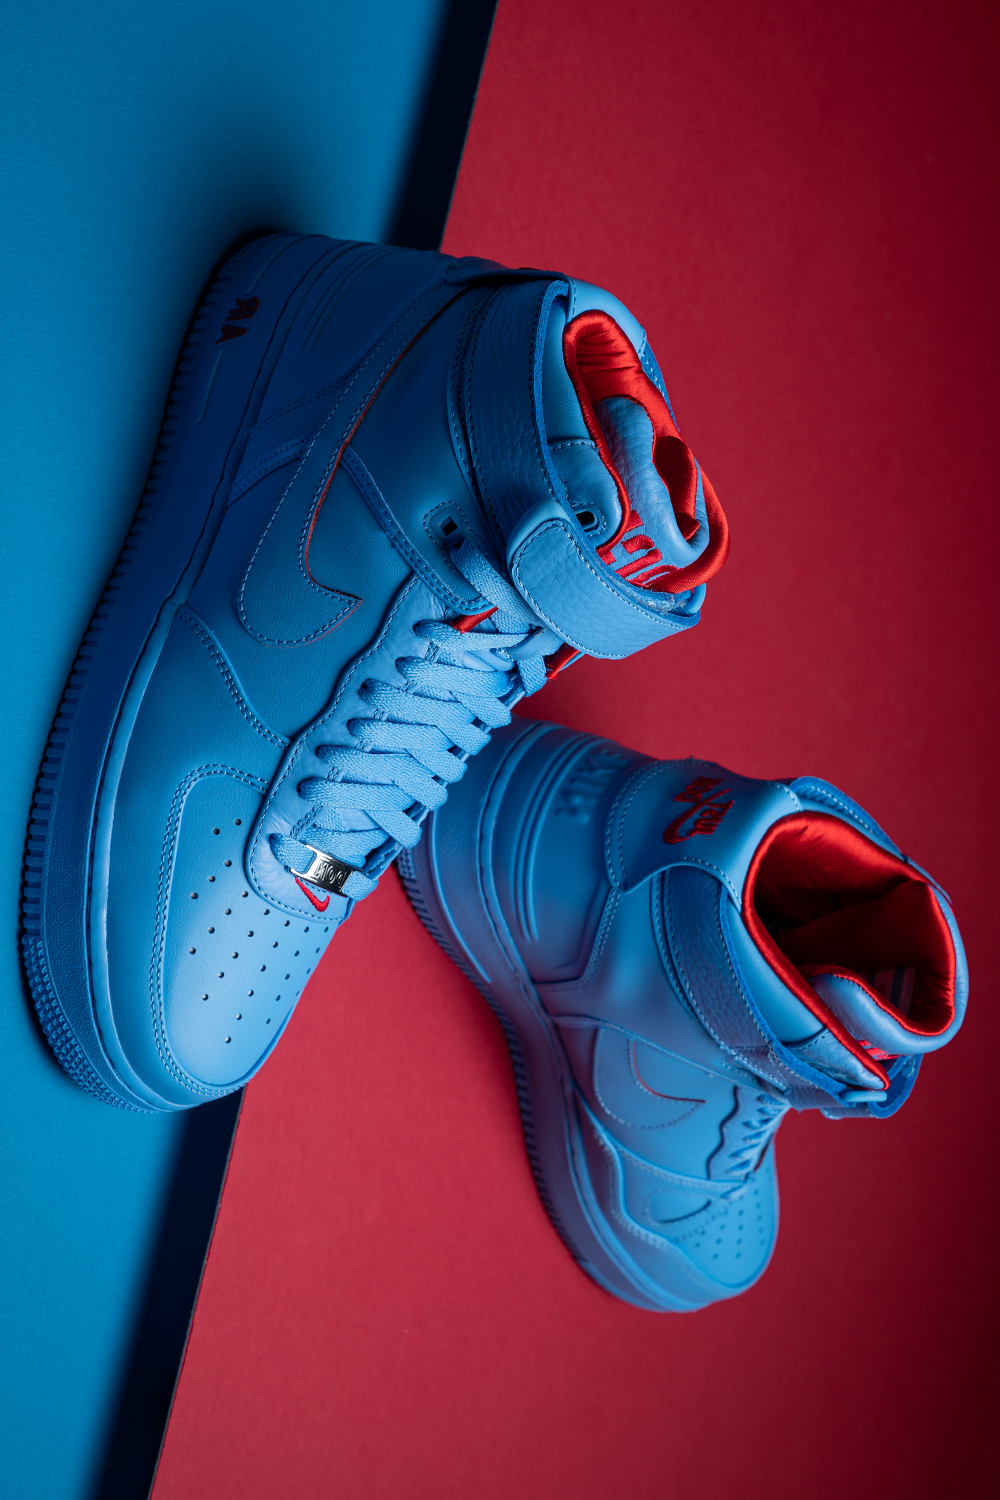 Nike Air Force 1 High Just Don All Star Cw3812 400 2021 In 2021 Nike Air Shoes Jordan Shoes Retro Nike Air Force High